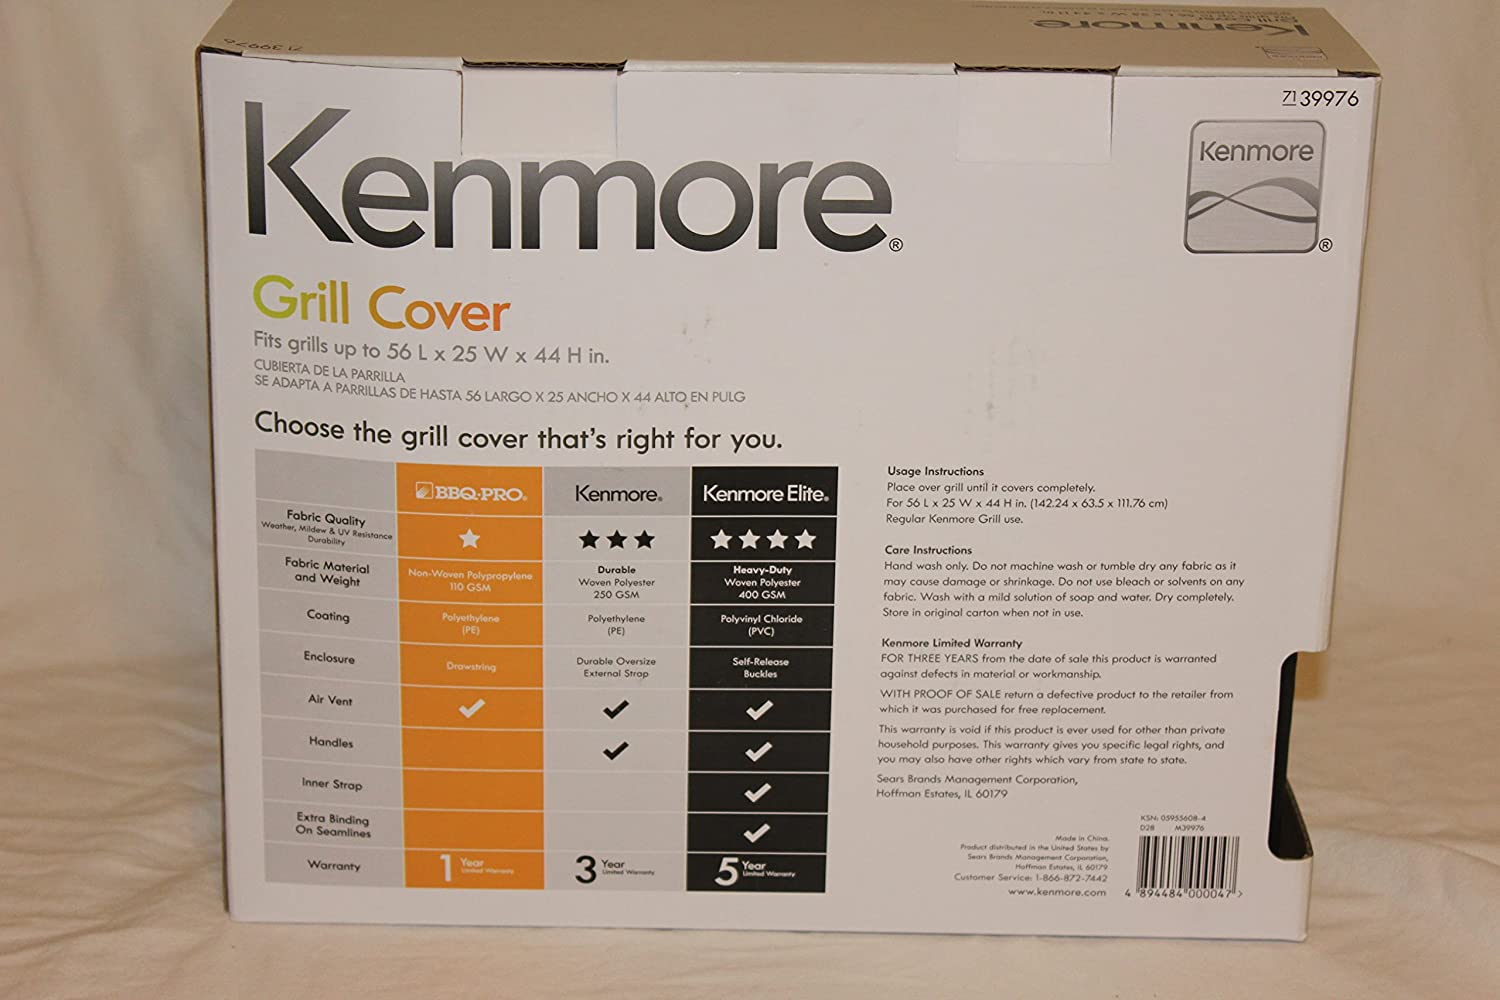 Kenmore Grill Cover Fits Grills Up To 56 L x 25 W x 44 H in.